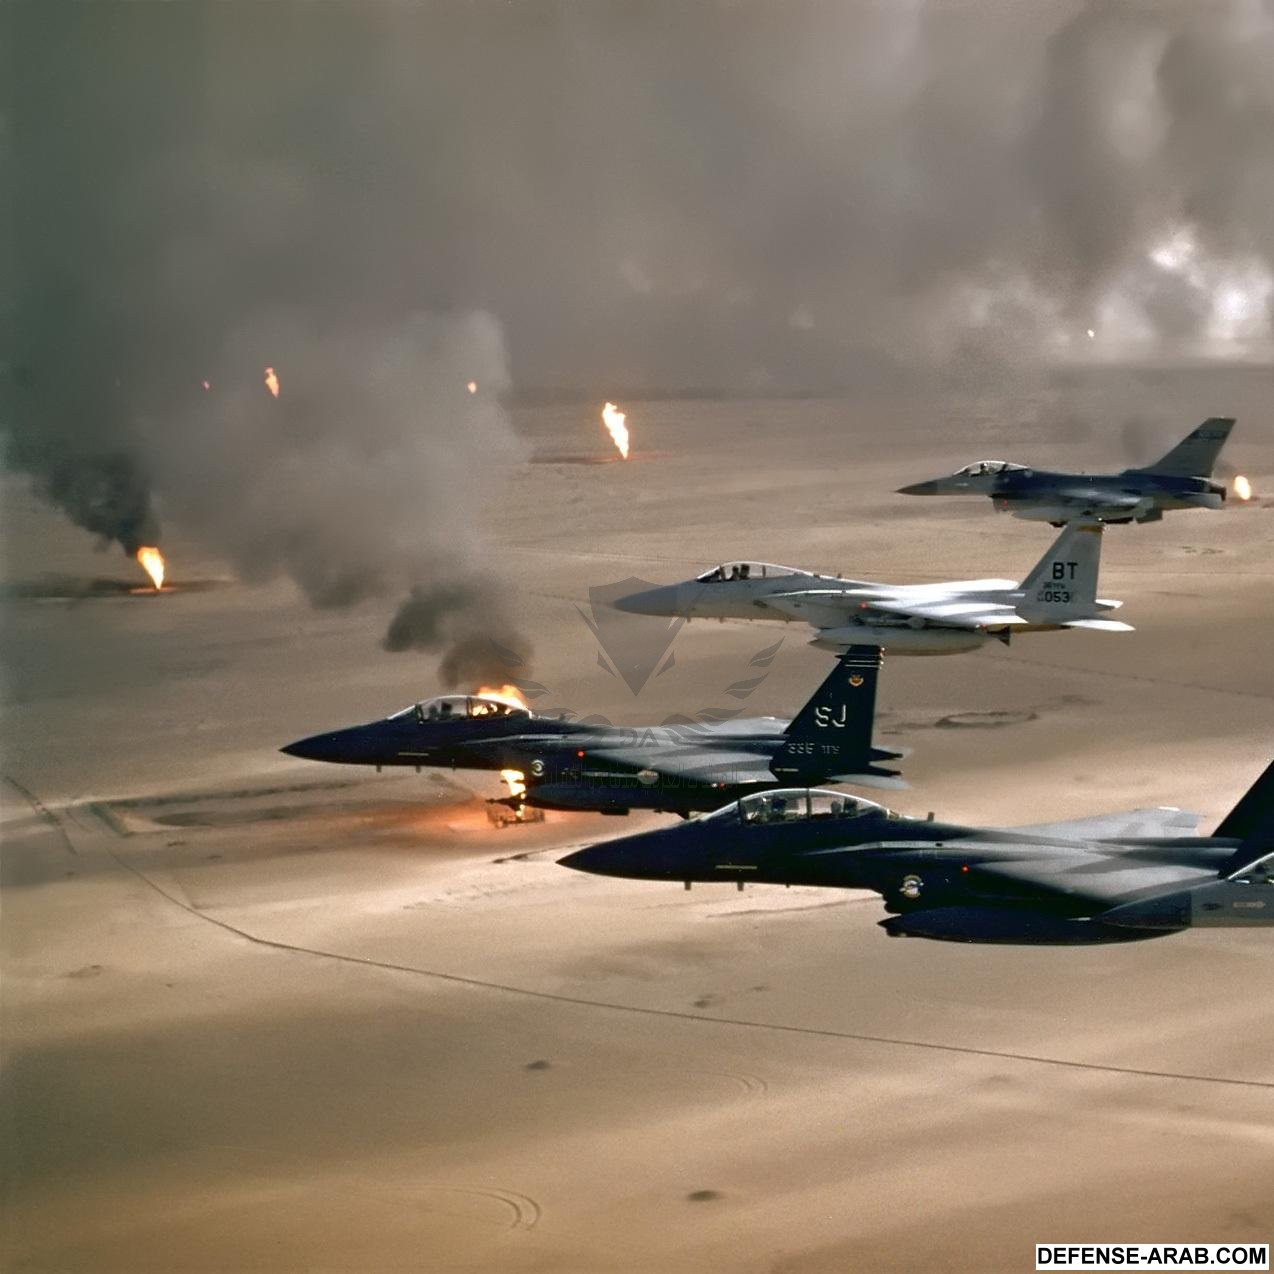 the-us-launched-operation-desert-storm-25-years-ago-and-now-iraq-is-screwed-1452975322.jpg